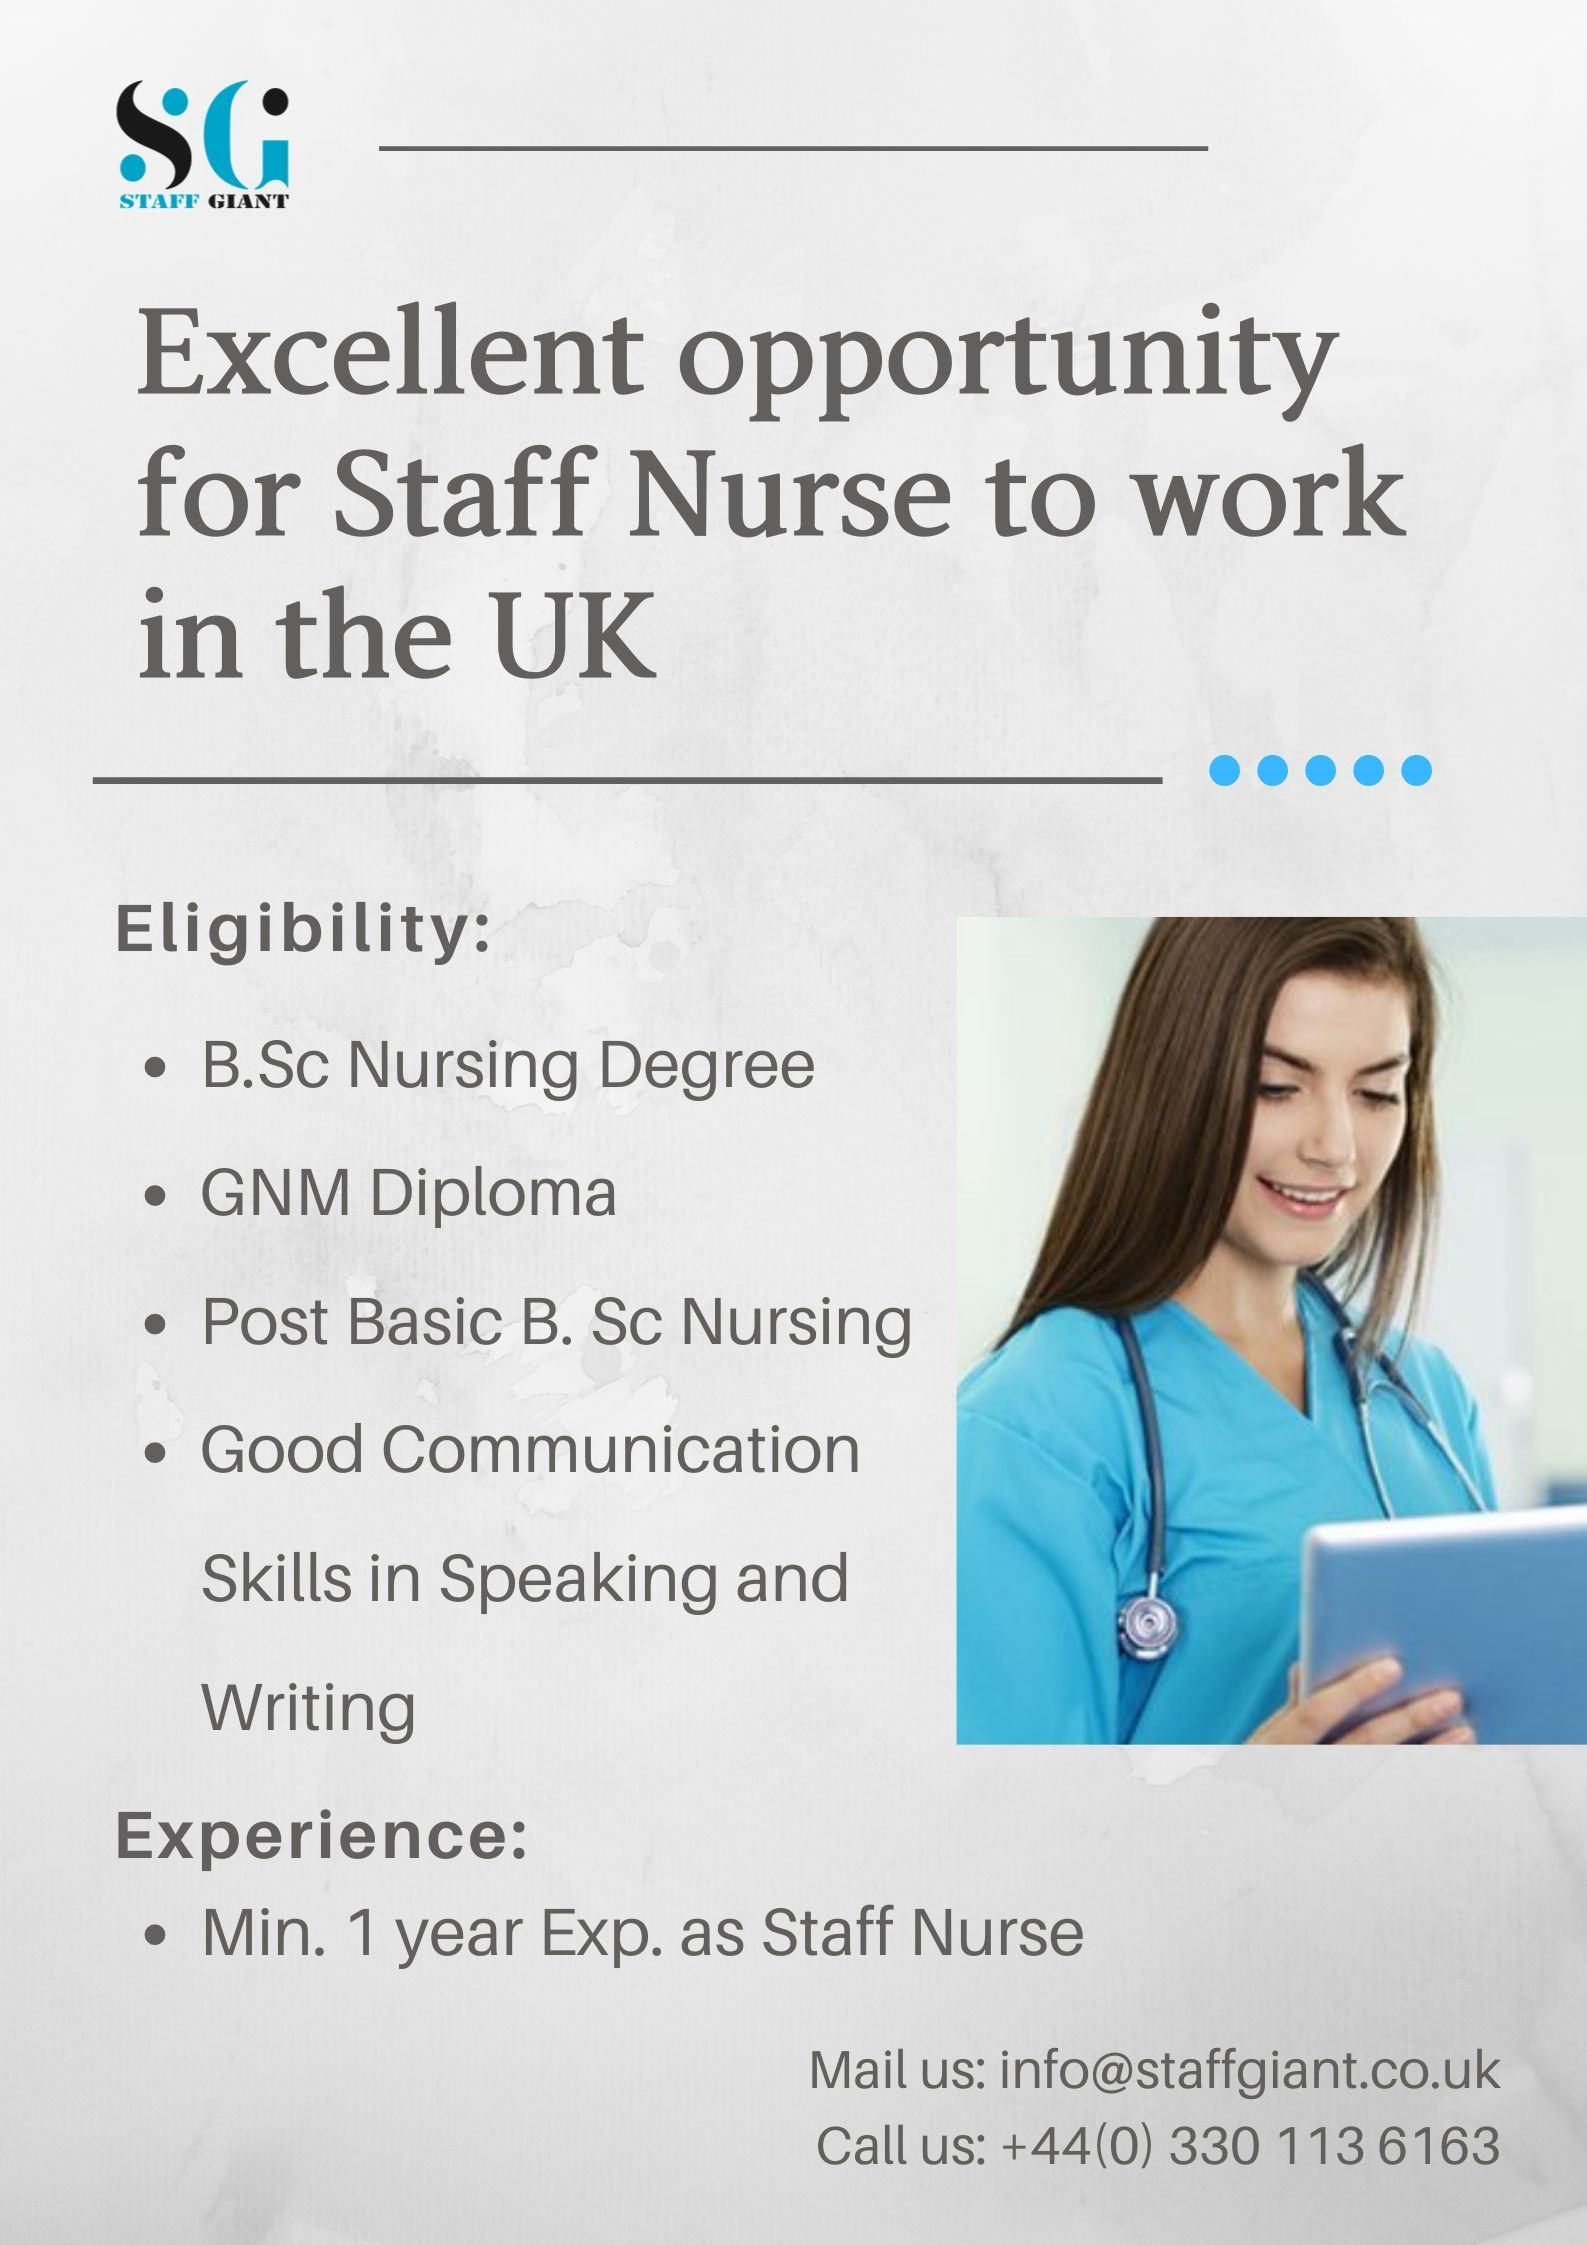 Excellent opportunity for Staff Nurse to work in the UK